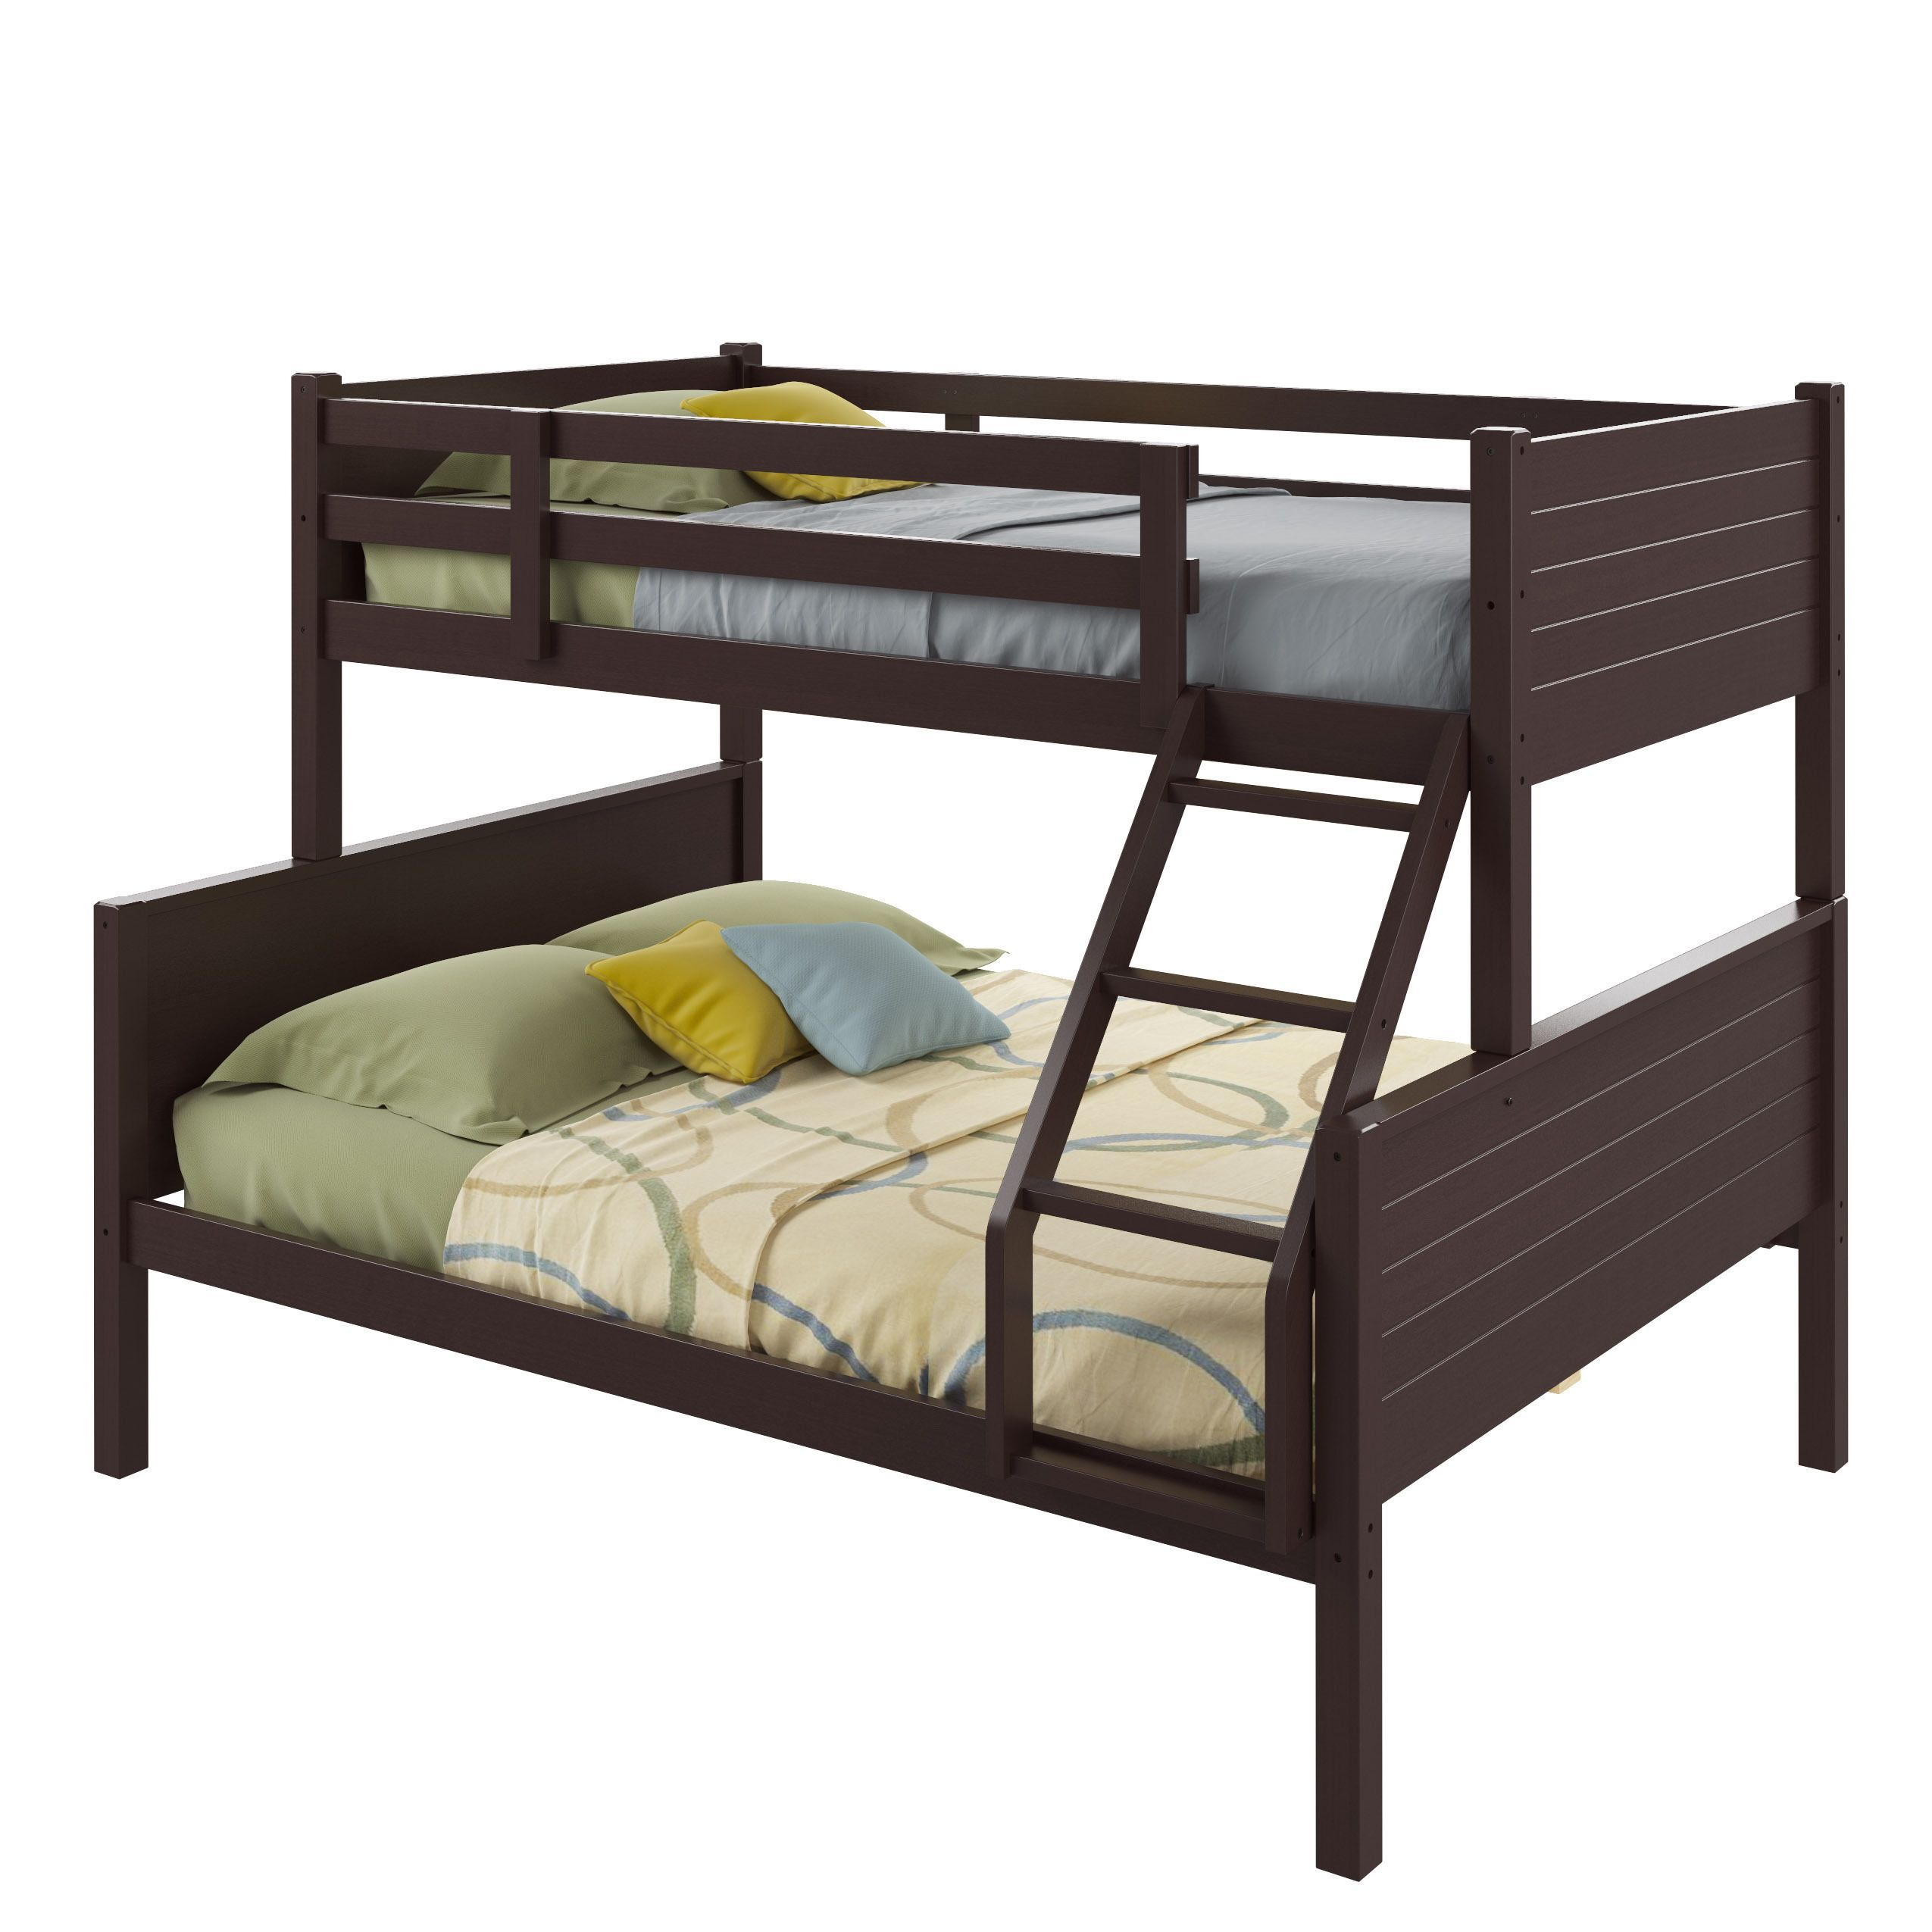 Twin over full loft bed with stairs  CorLiving Ashland TwinoverFull Bunk Bed Cappuccino  StainedWood